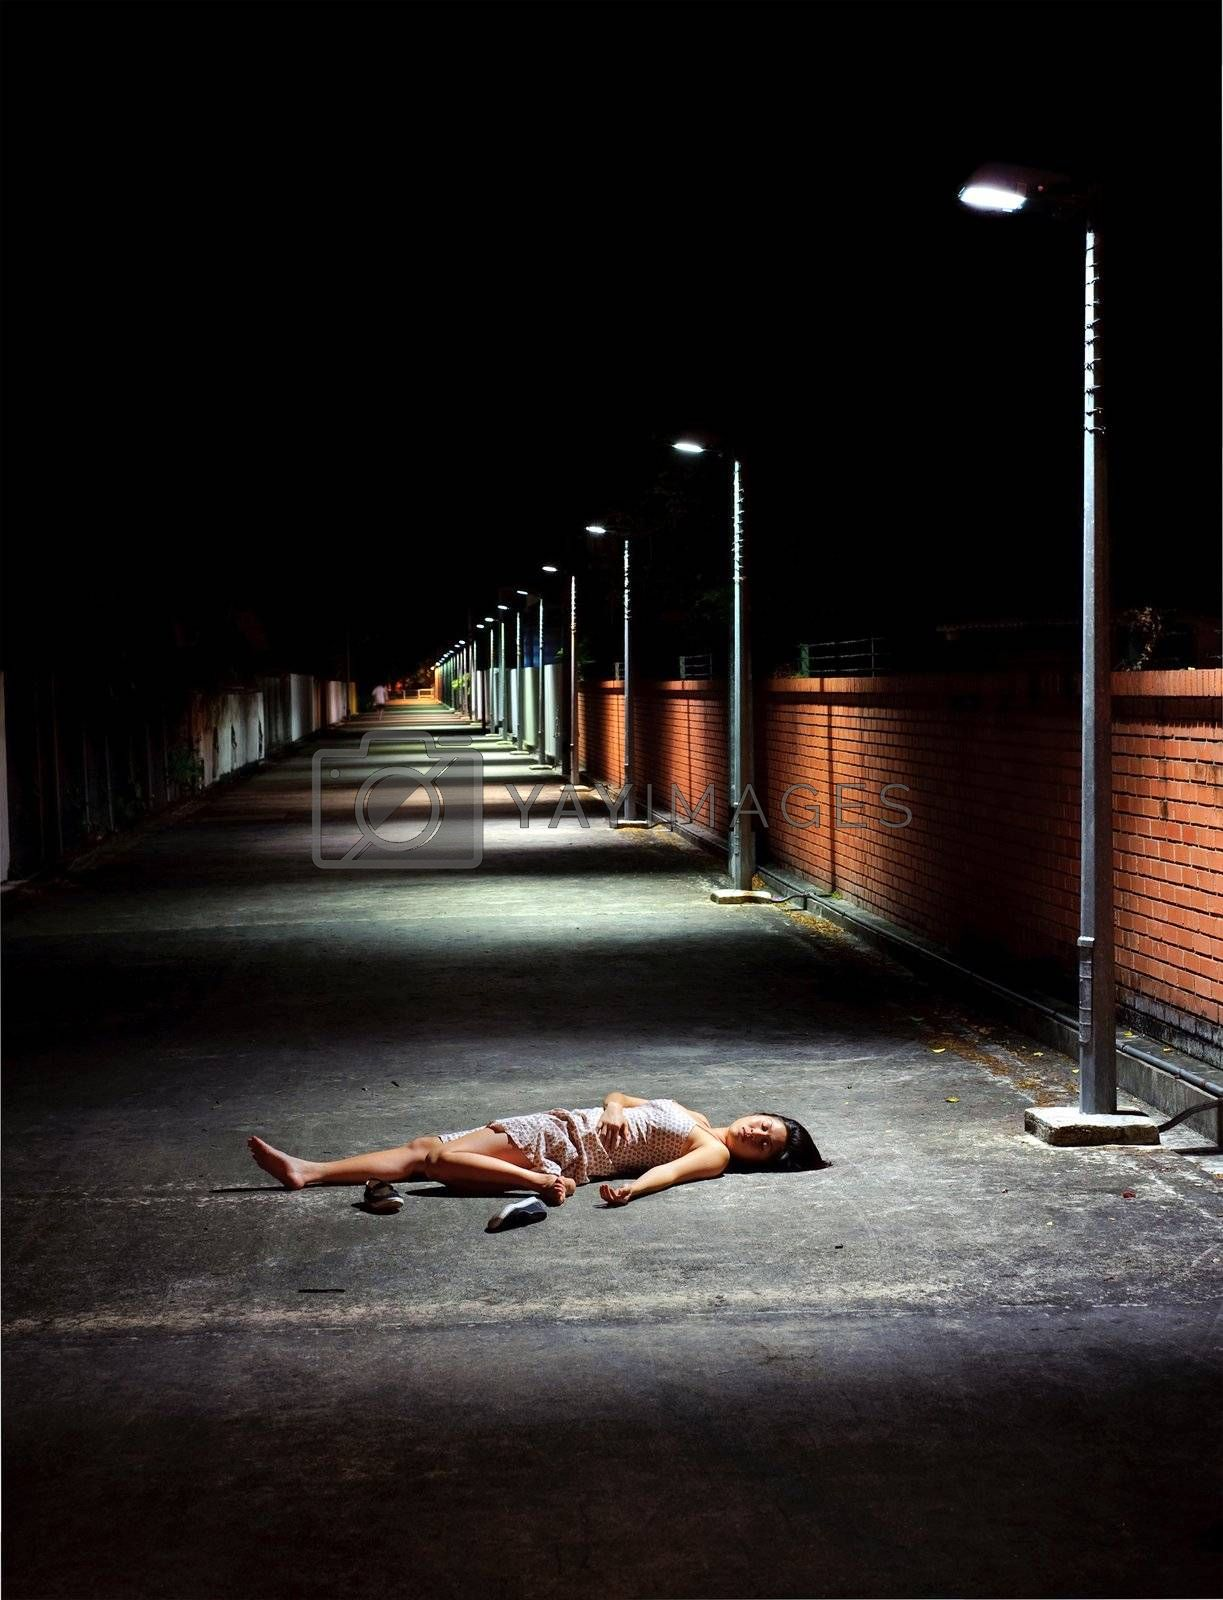 Girl lies vulnerable in the street